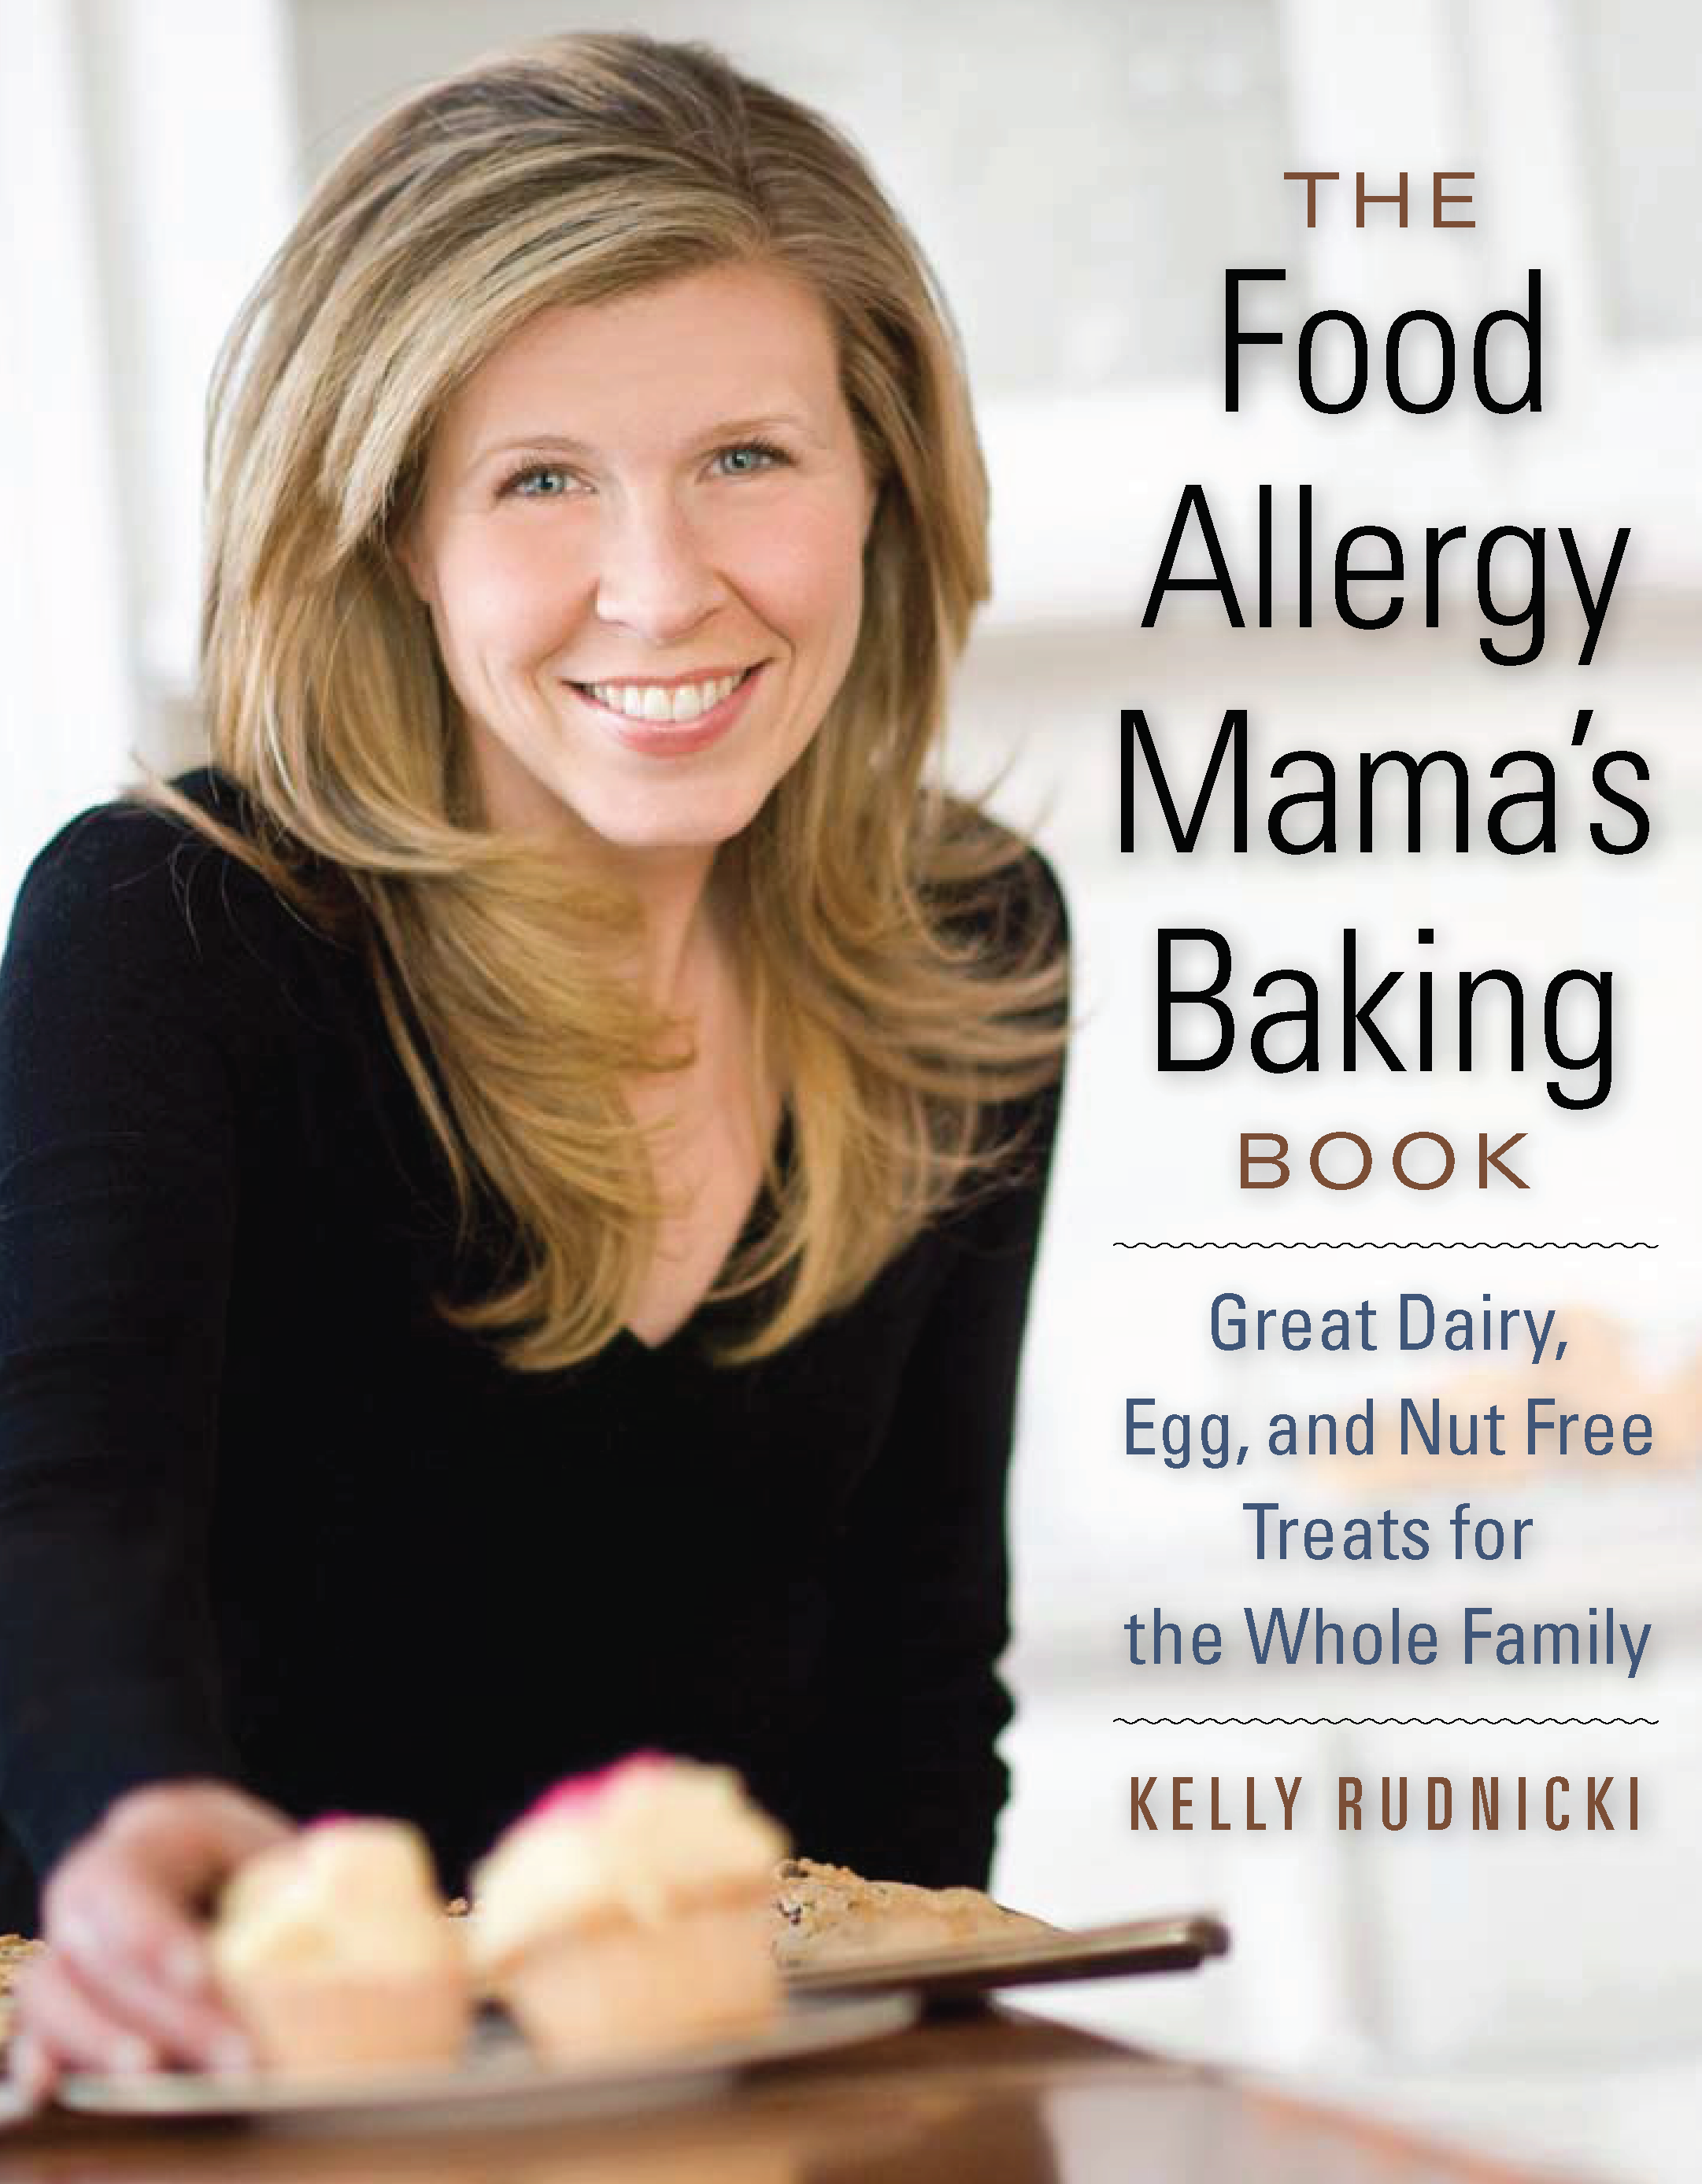 Food Allergy Mama's Baking_Page_01.png